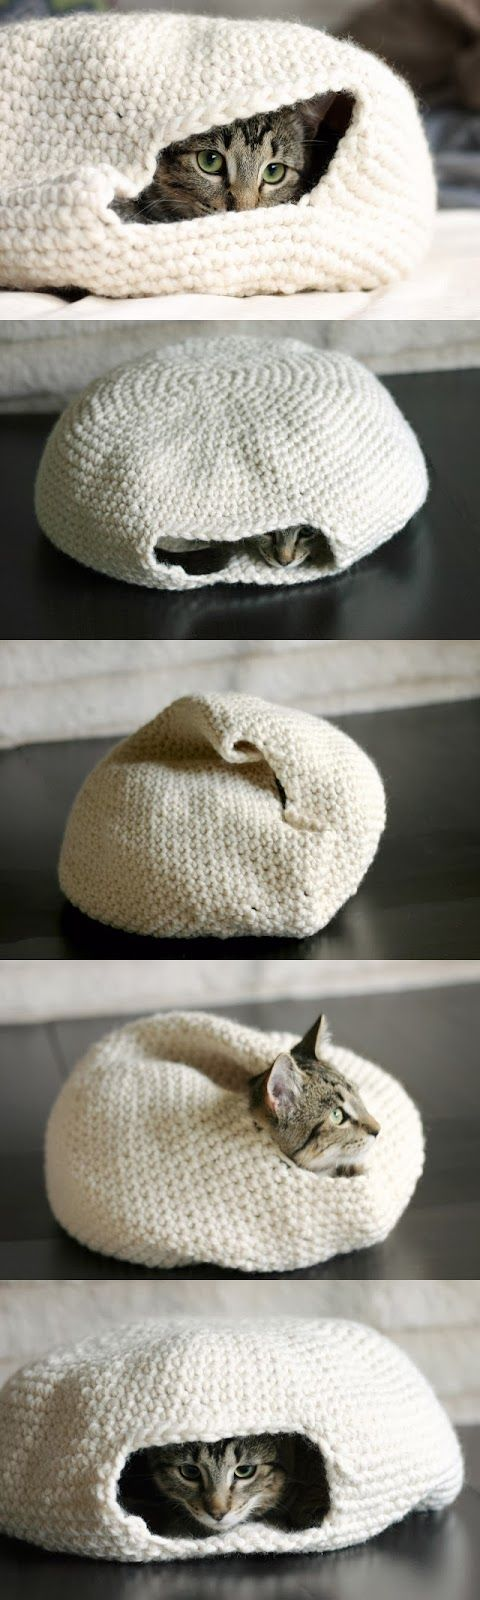 DIY Cozy Crochet Cat Bed | DIY Craft Project                                                                                                                                                     More